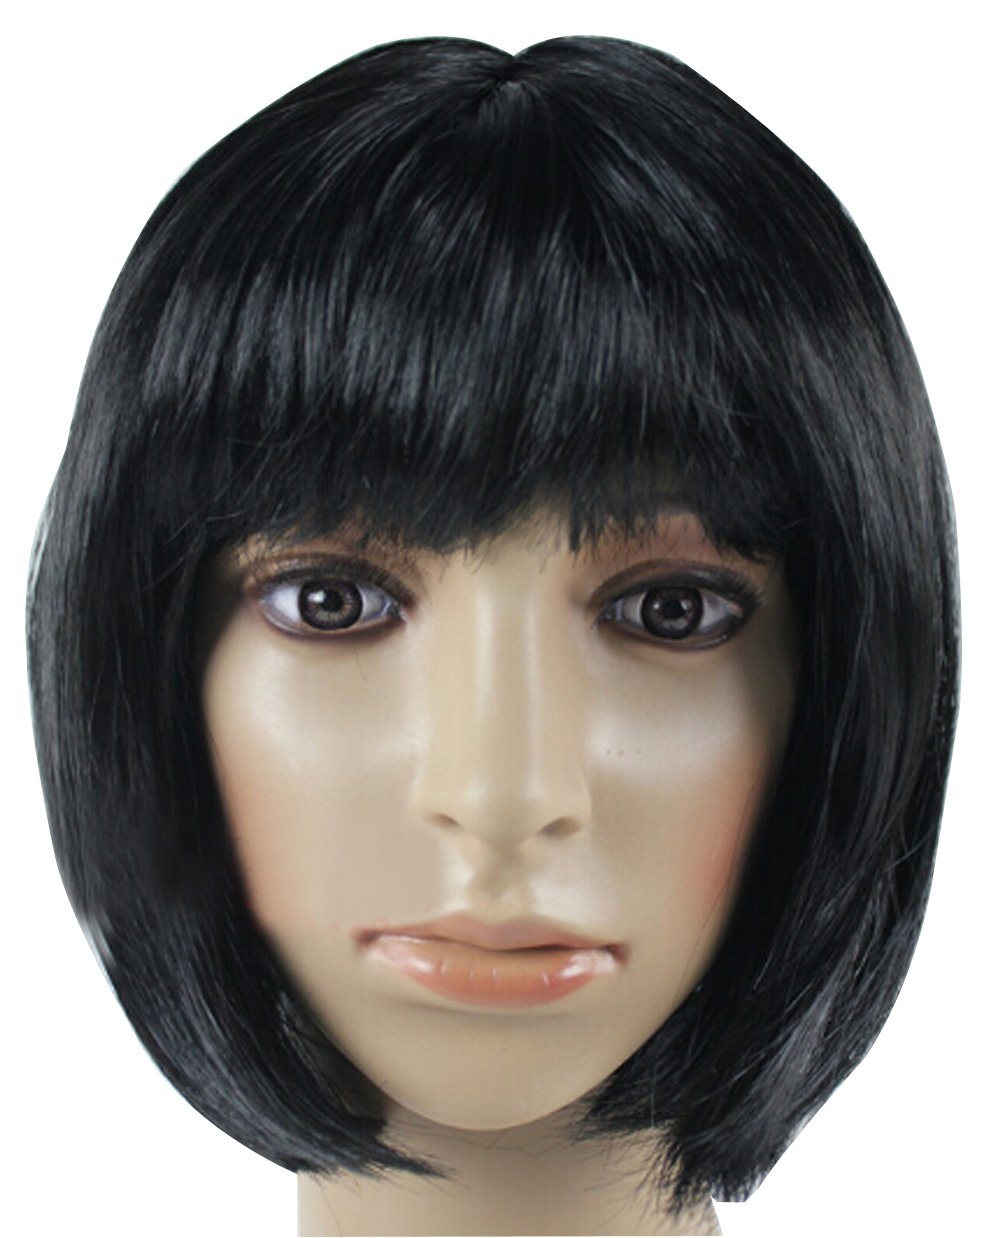 Fashion Cute COS Wigs for Children's Color Bobo Fluffy Short Straight Hair (black)